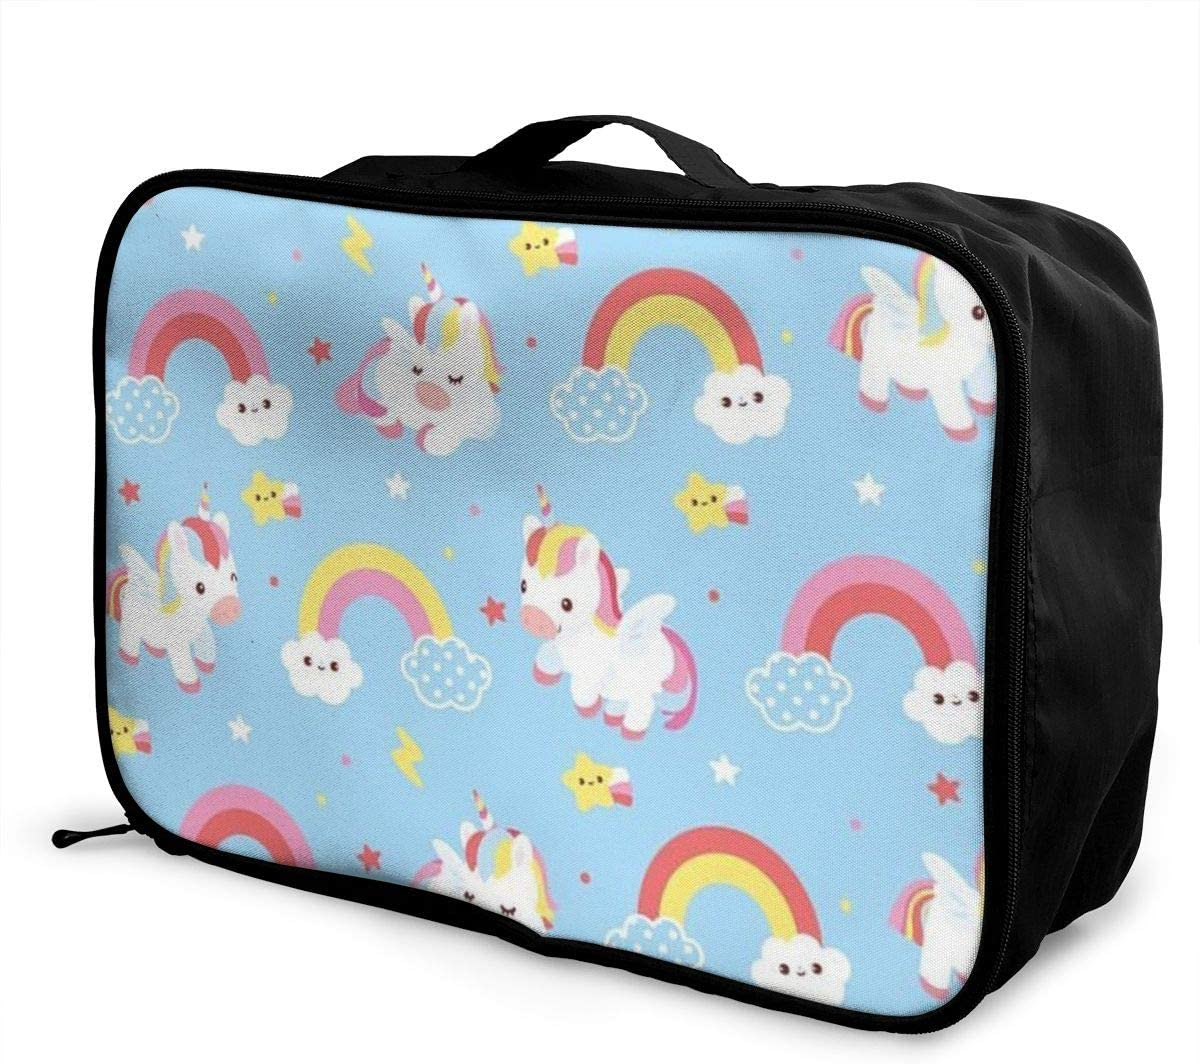 Collection-of-unicorns Travel Carry-on Luggage Weekender Bag Overnight Tote Flight Duffel In Trolley Handle